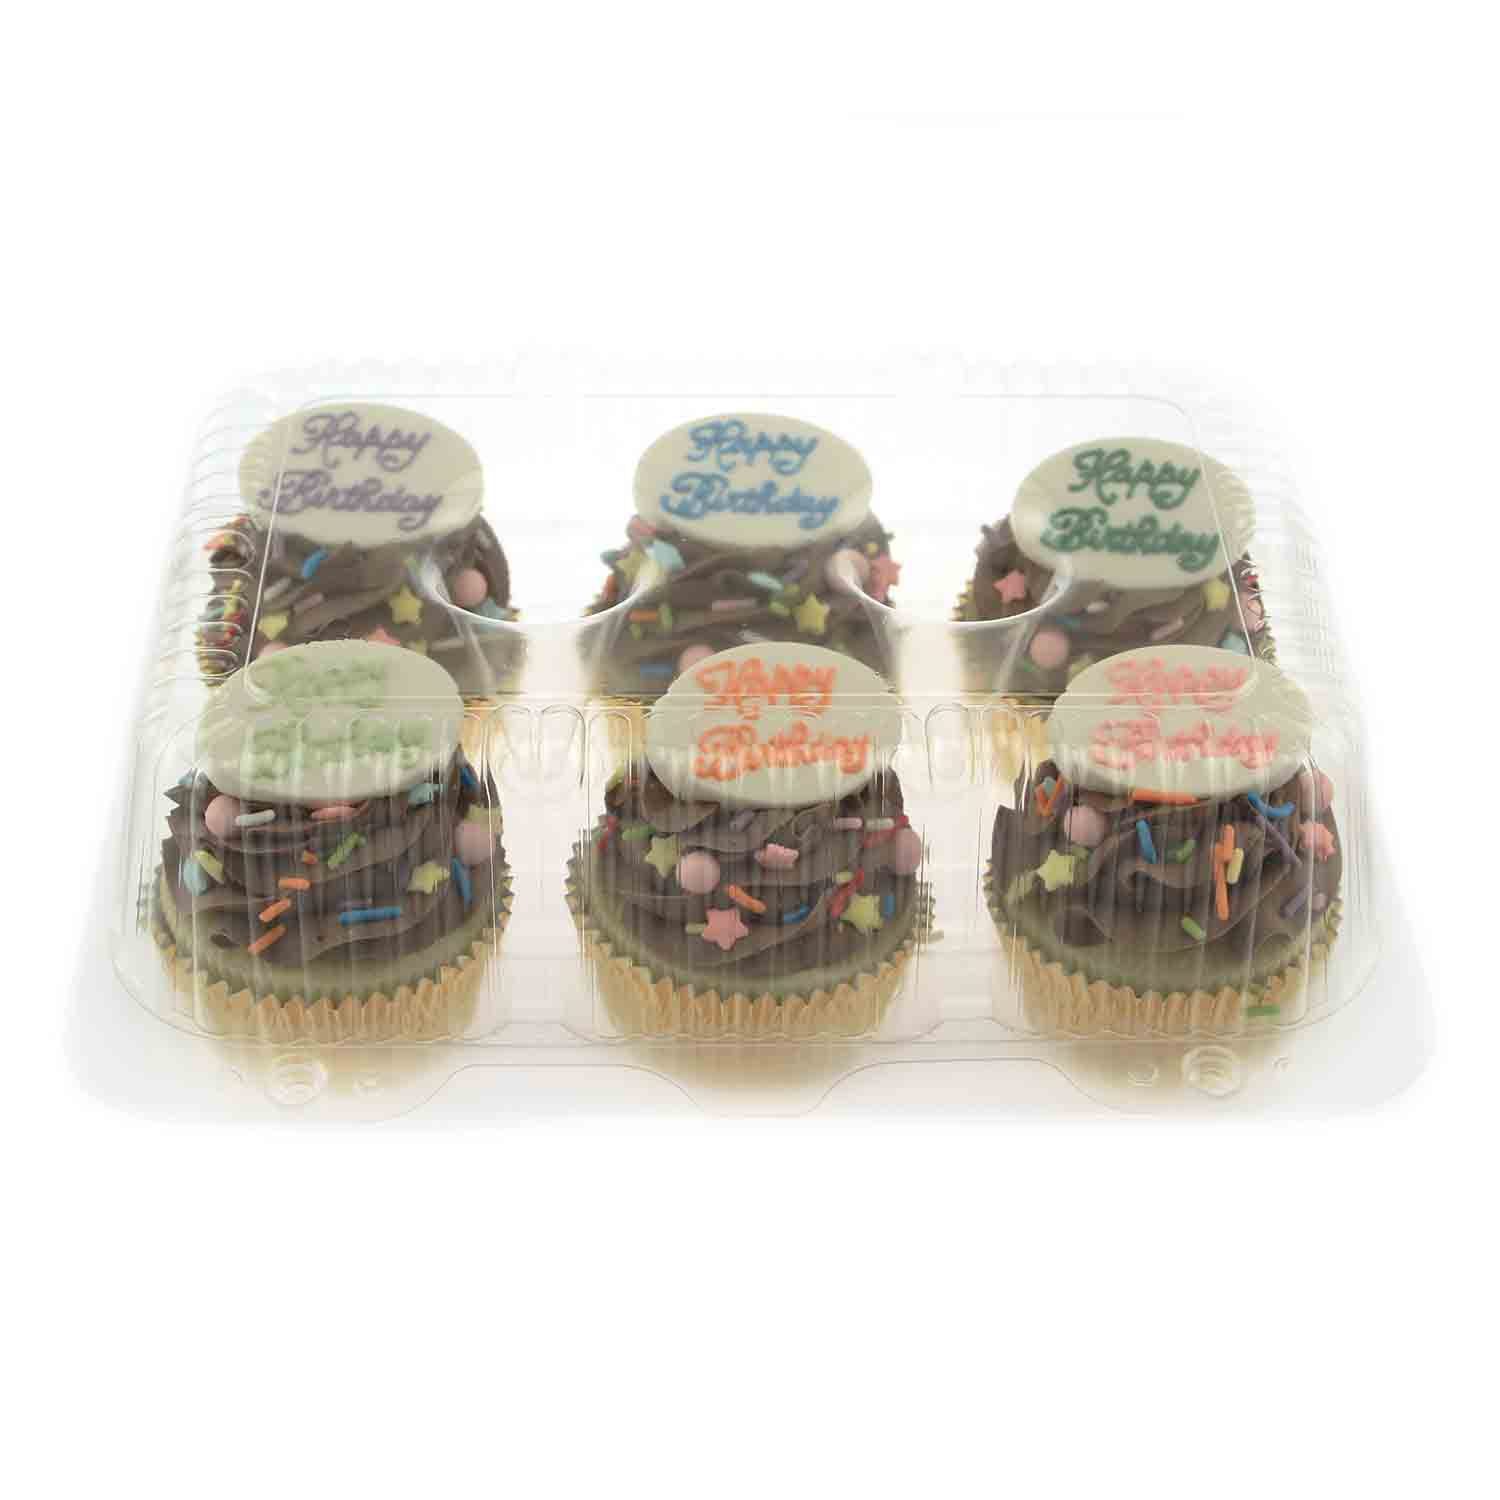 Plastic Shell -Holds 6 Standard Size Cupcakes